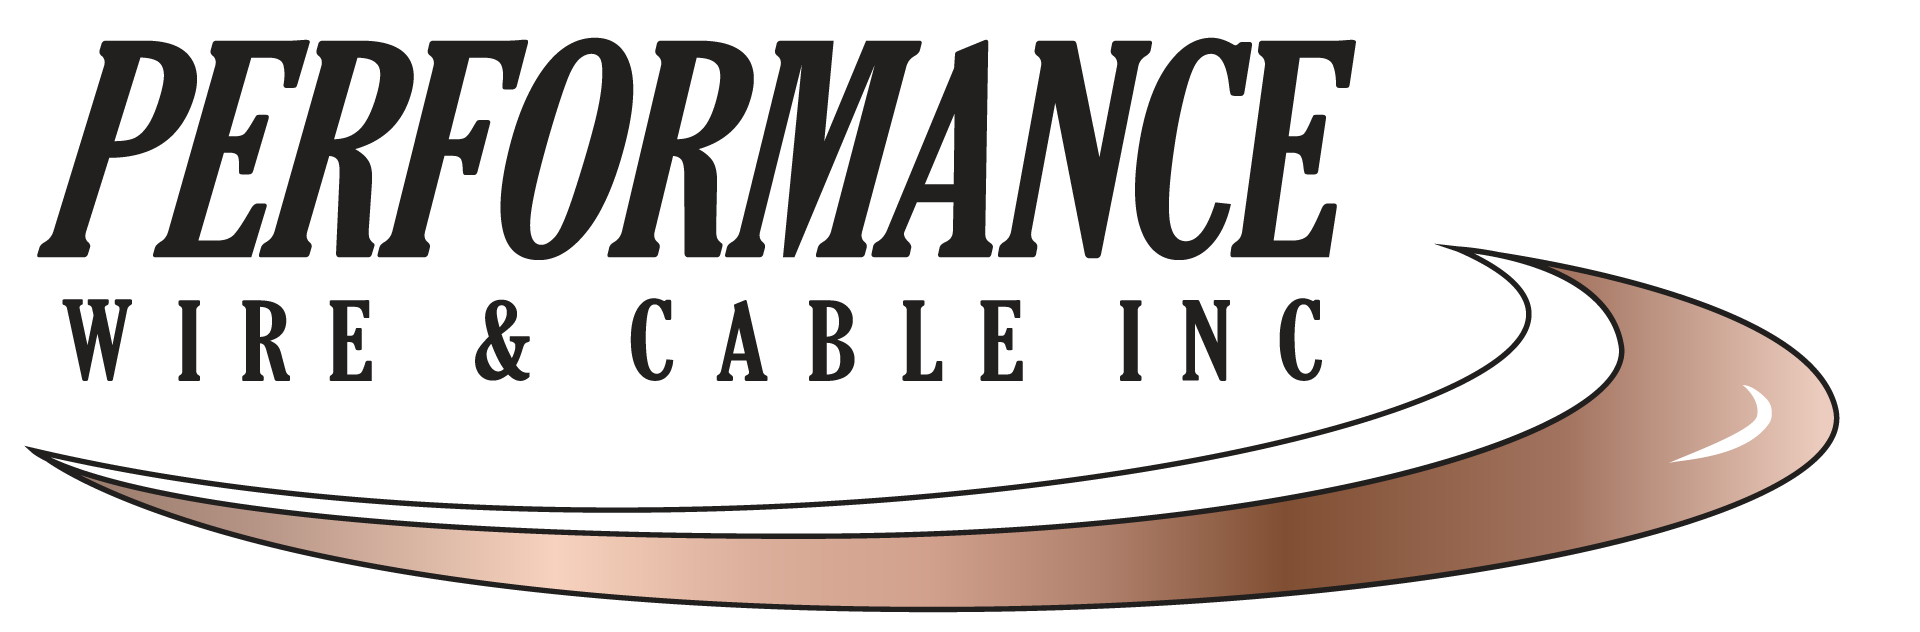 Performance Wire and Cable